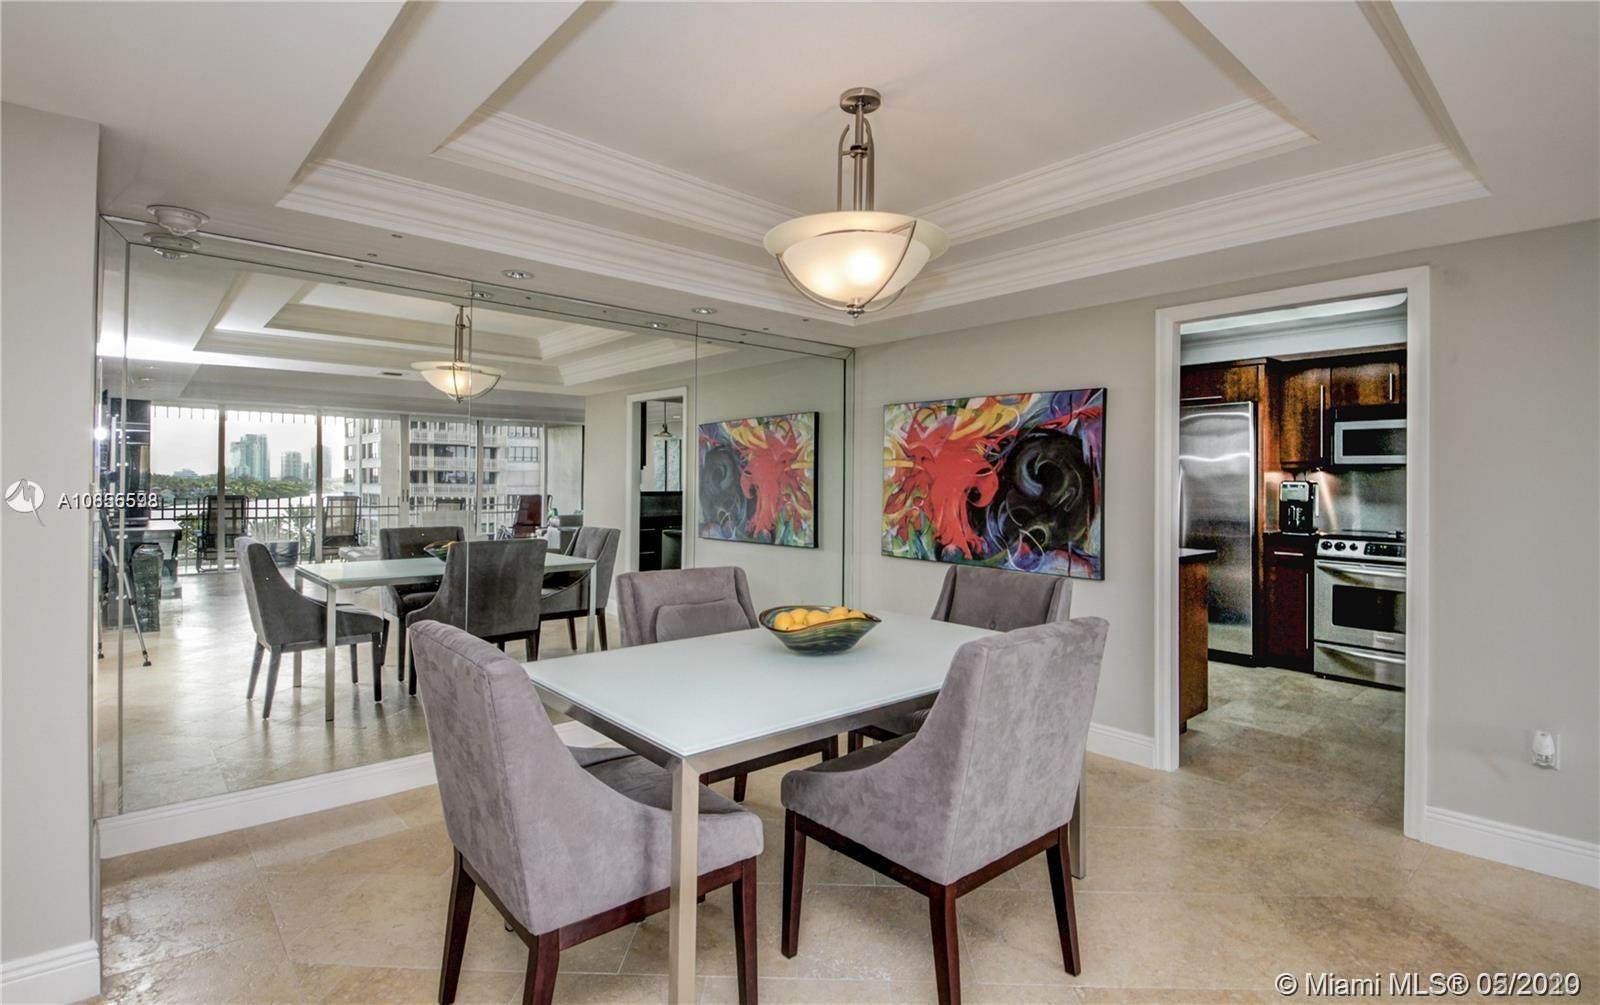 3 Grove Isle Dr # C606, Miami, Florida 33133, 2 Bedrooms Bedrooms, ,2 BathroomsBathrooms,Residential,For Sale,3 Grove Isle Dr # C606,A10855598